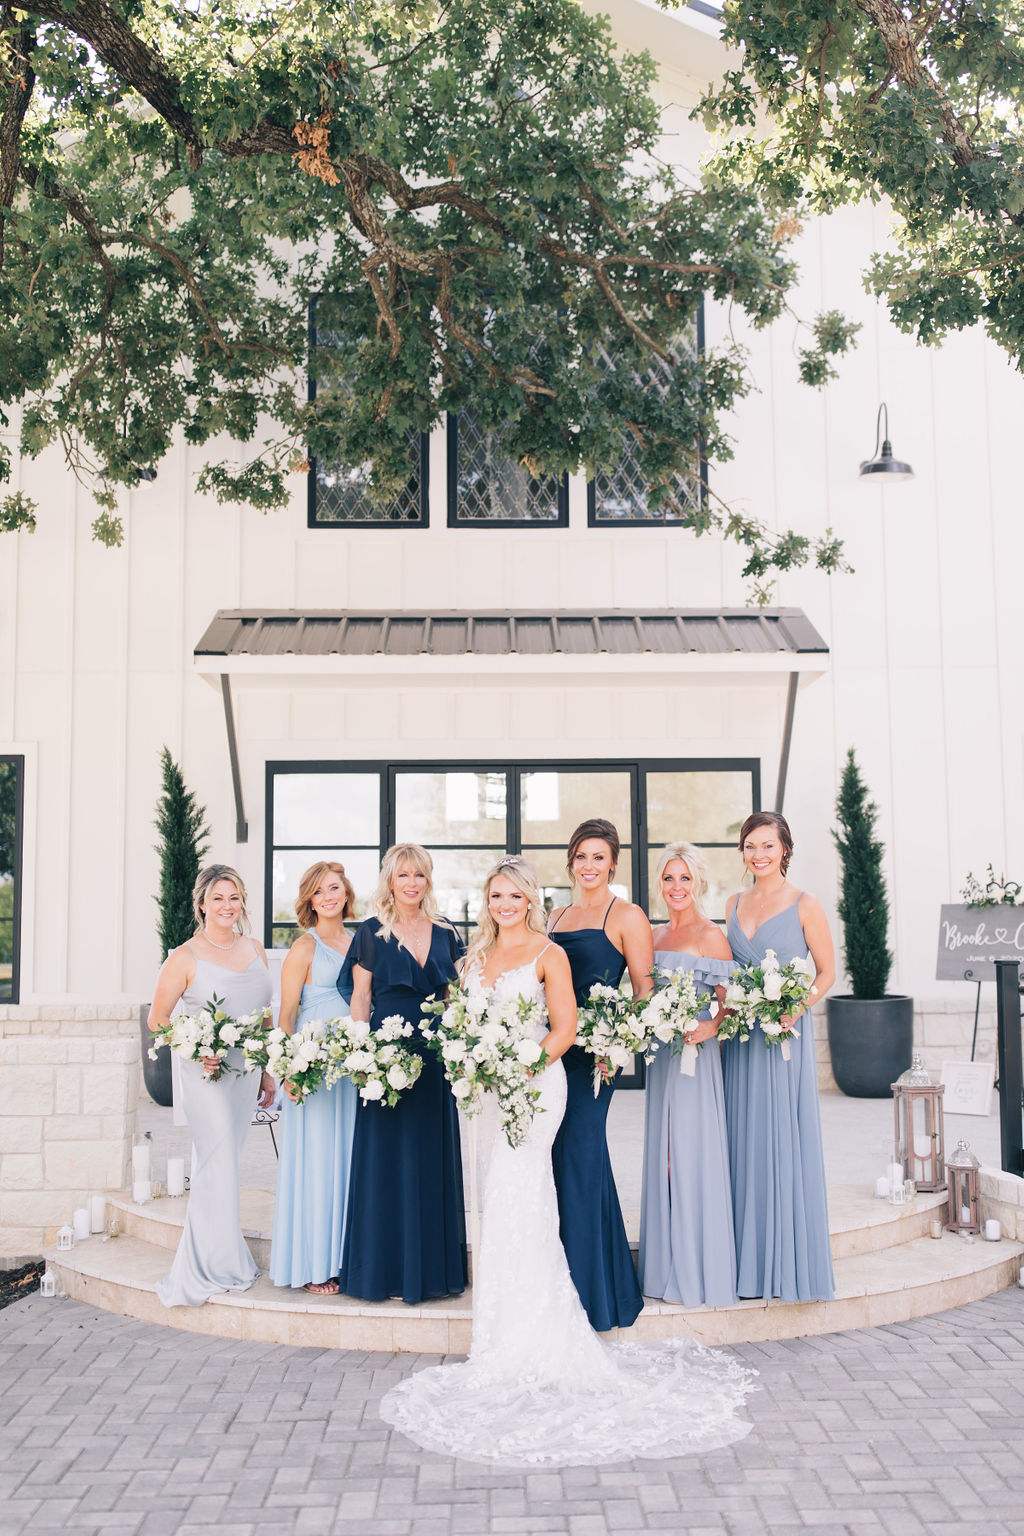 light-and-airy-dallas-fortworth-wedding-photography-bushel-peck4